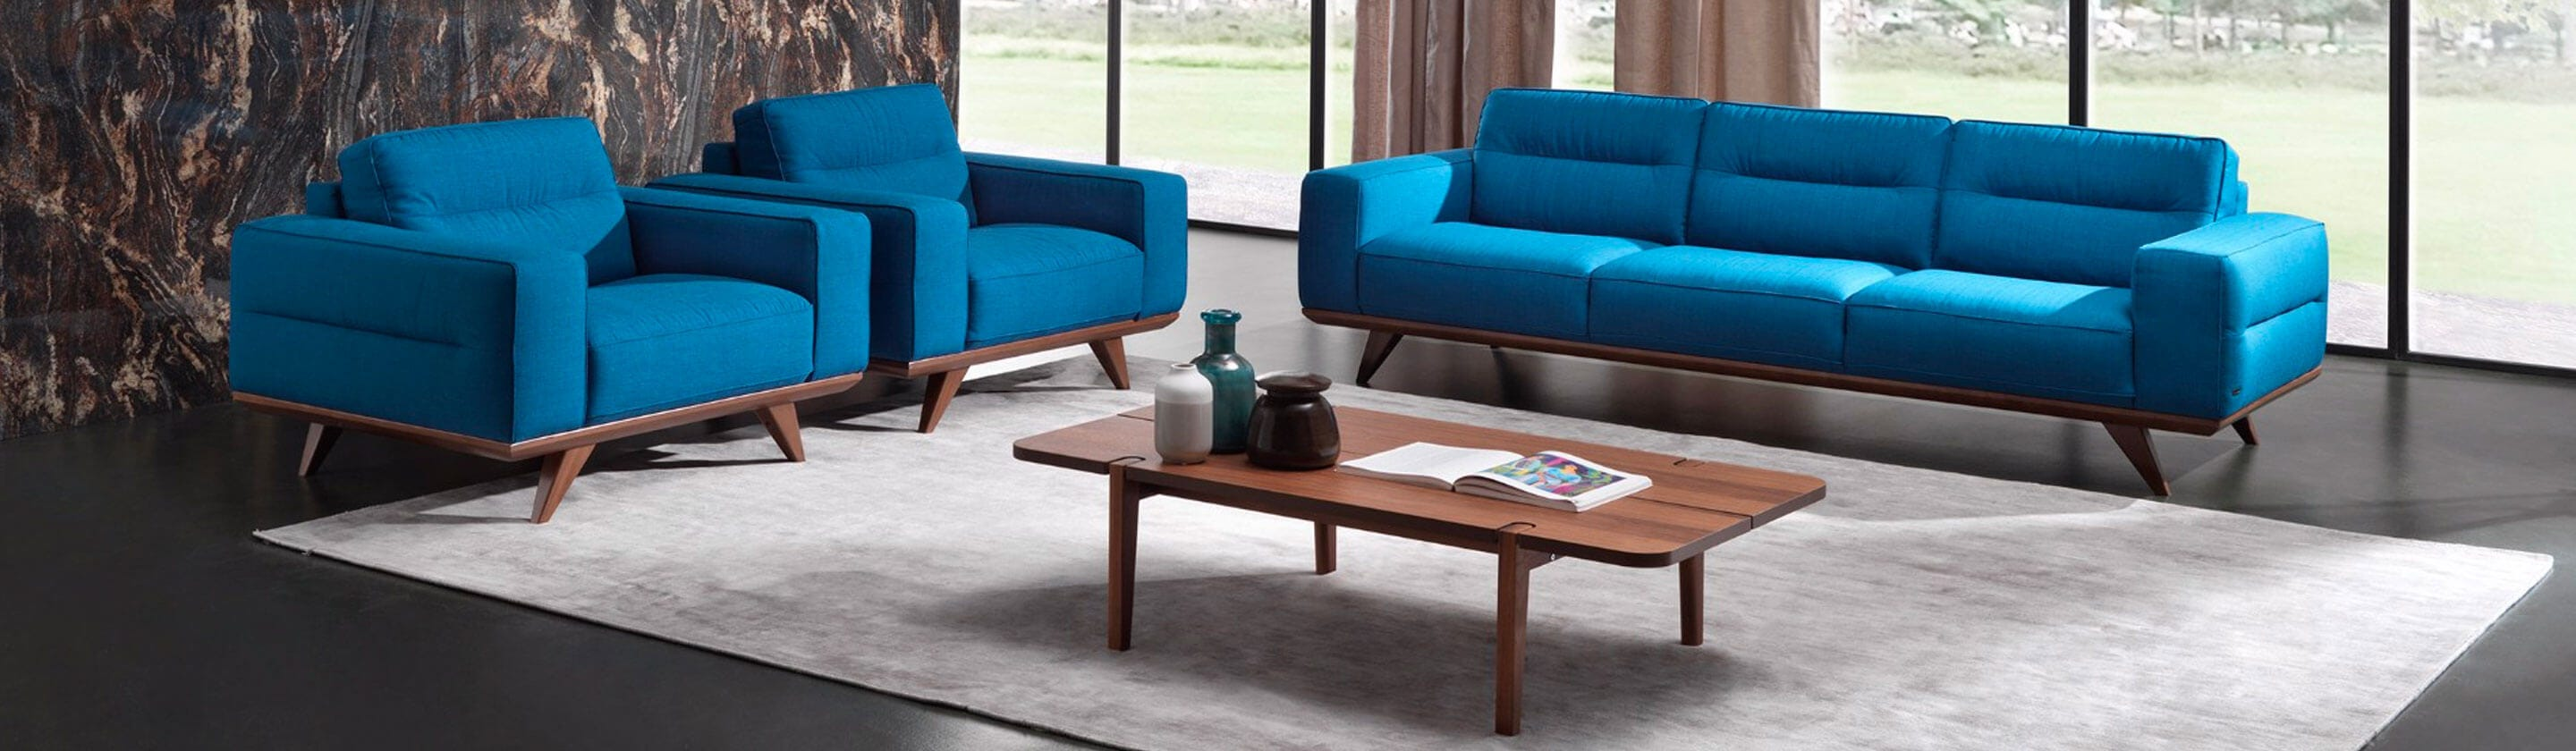 Natuzzi Furniture from Watson's